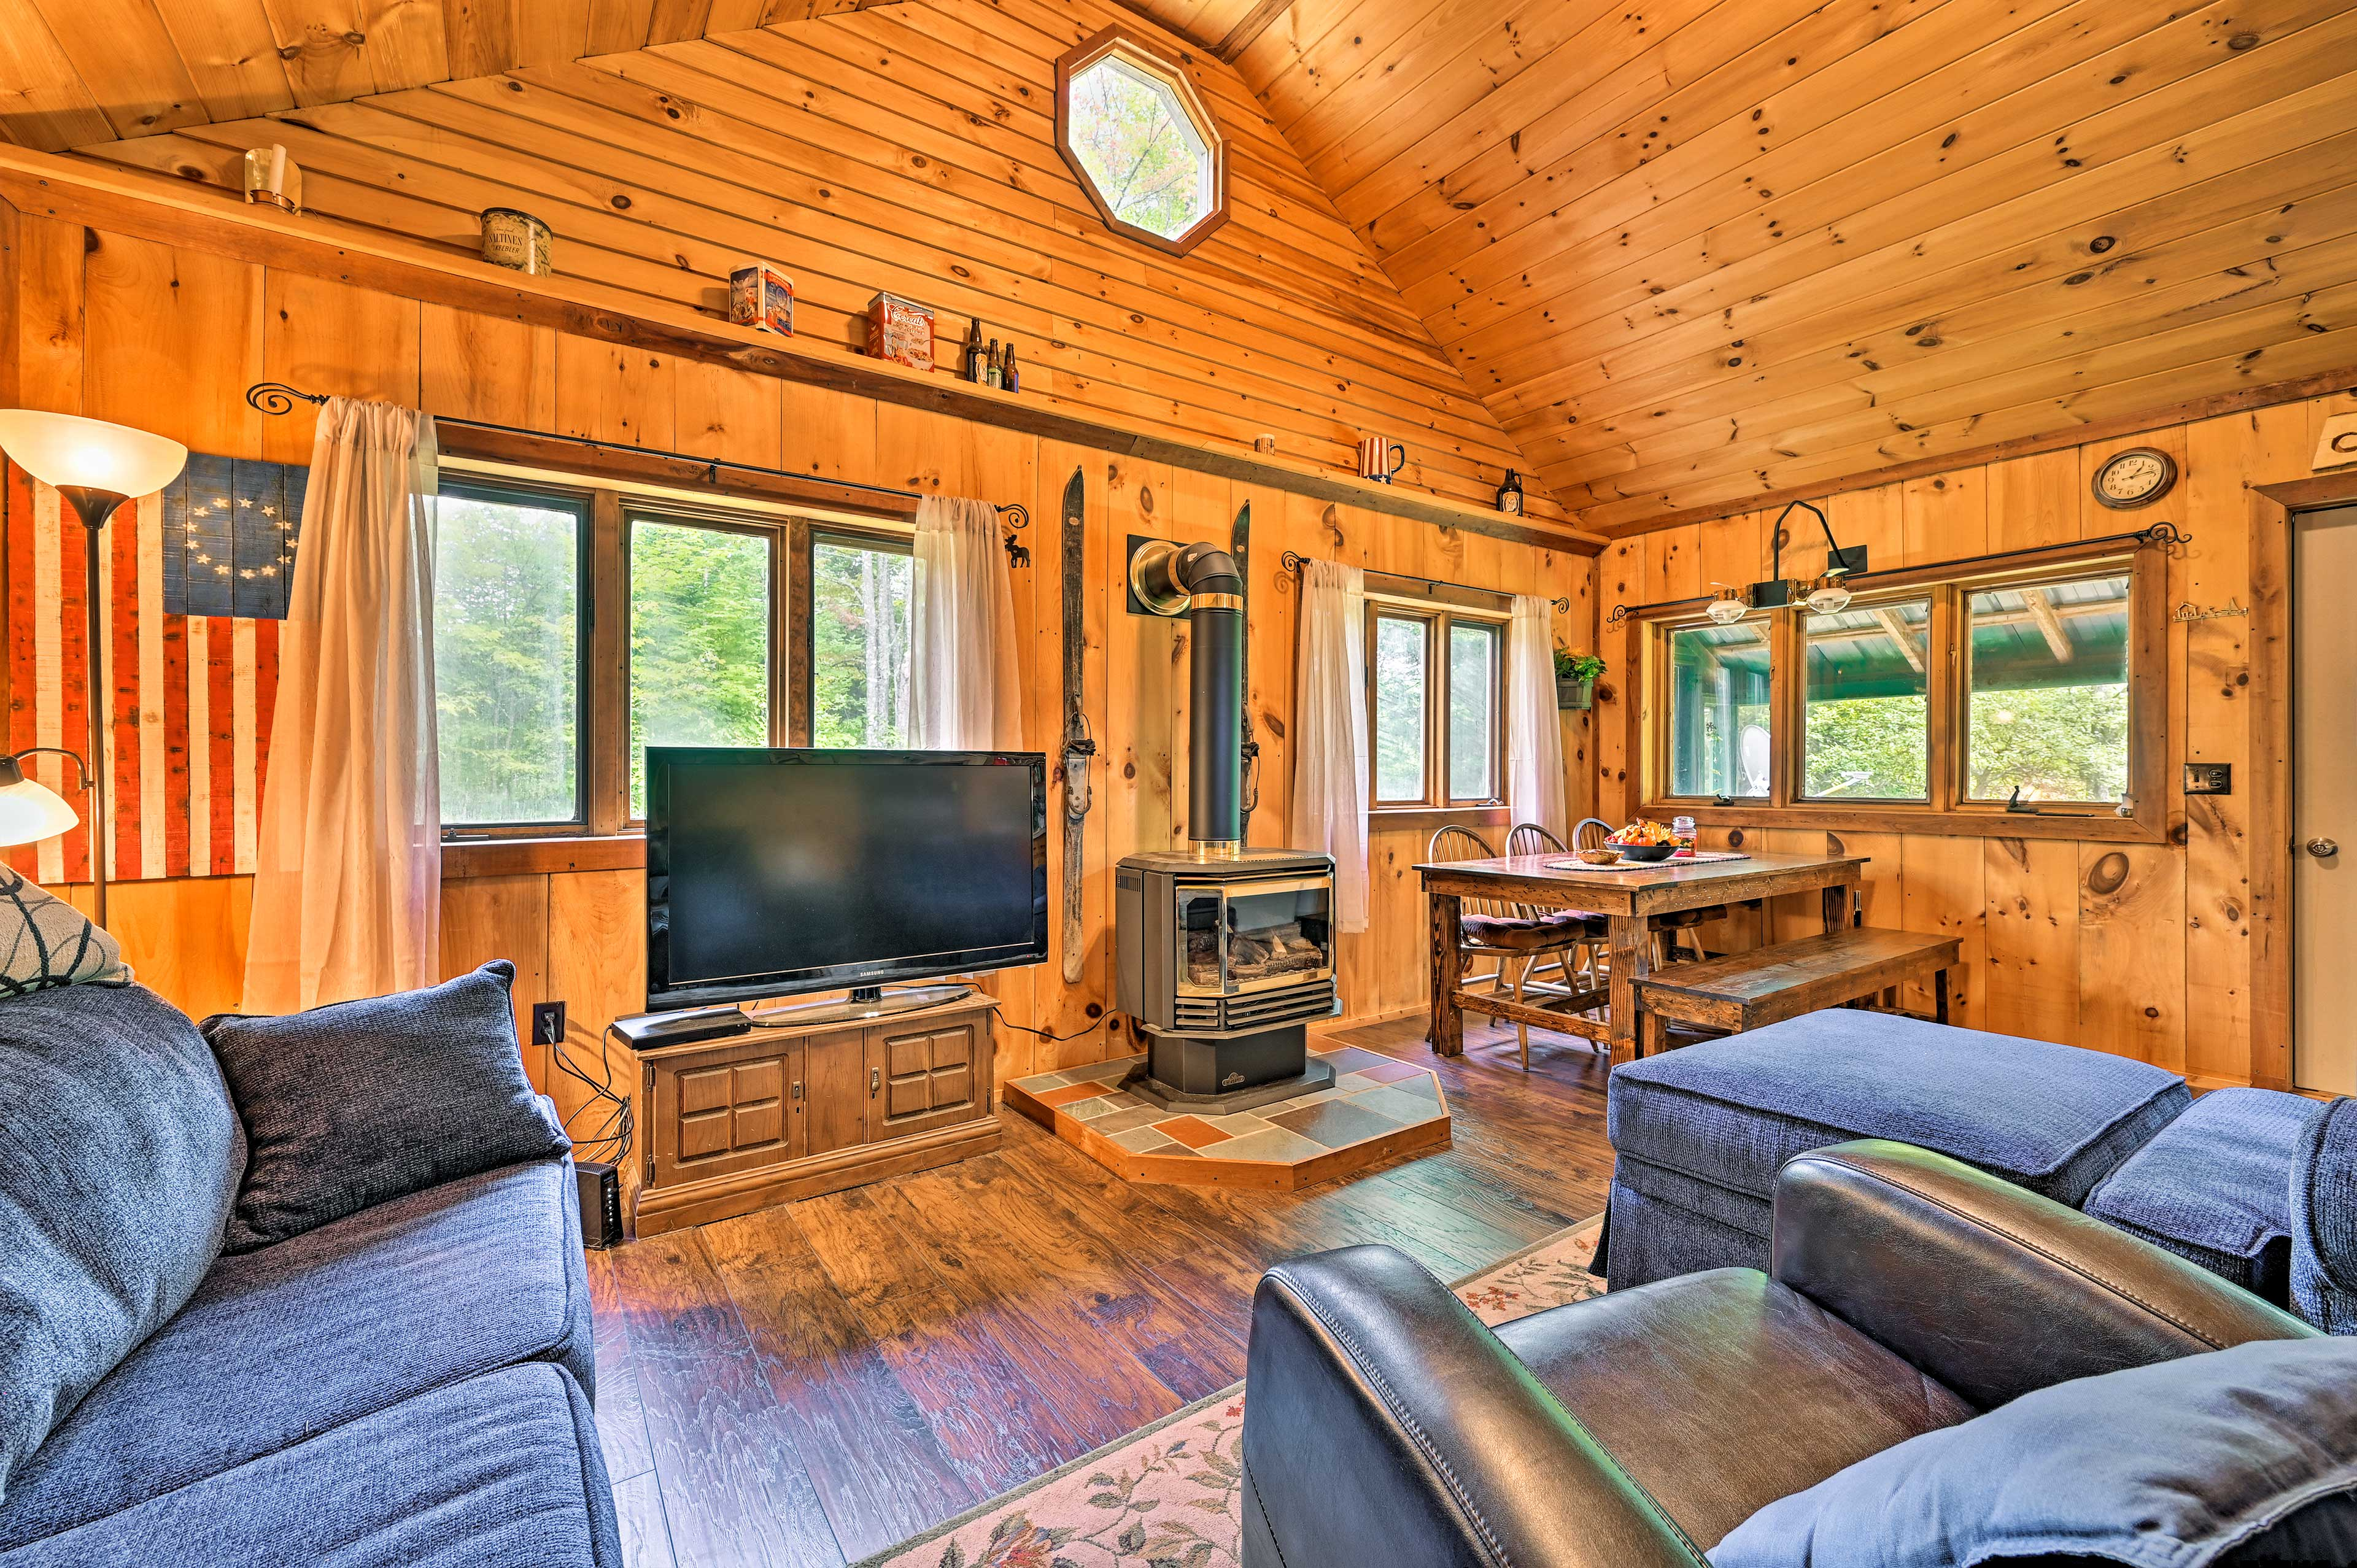 The well-appointed interior boasts all of the comforts of home!